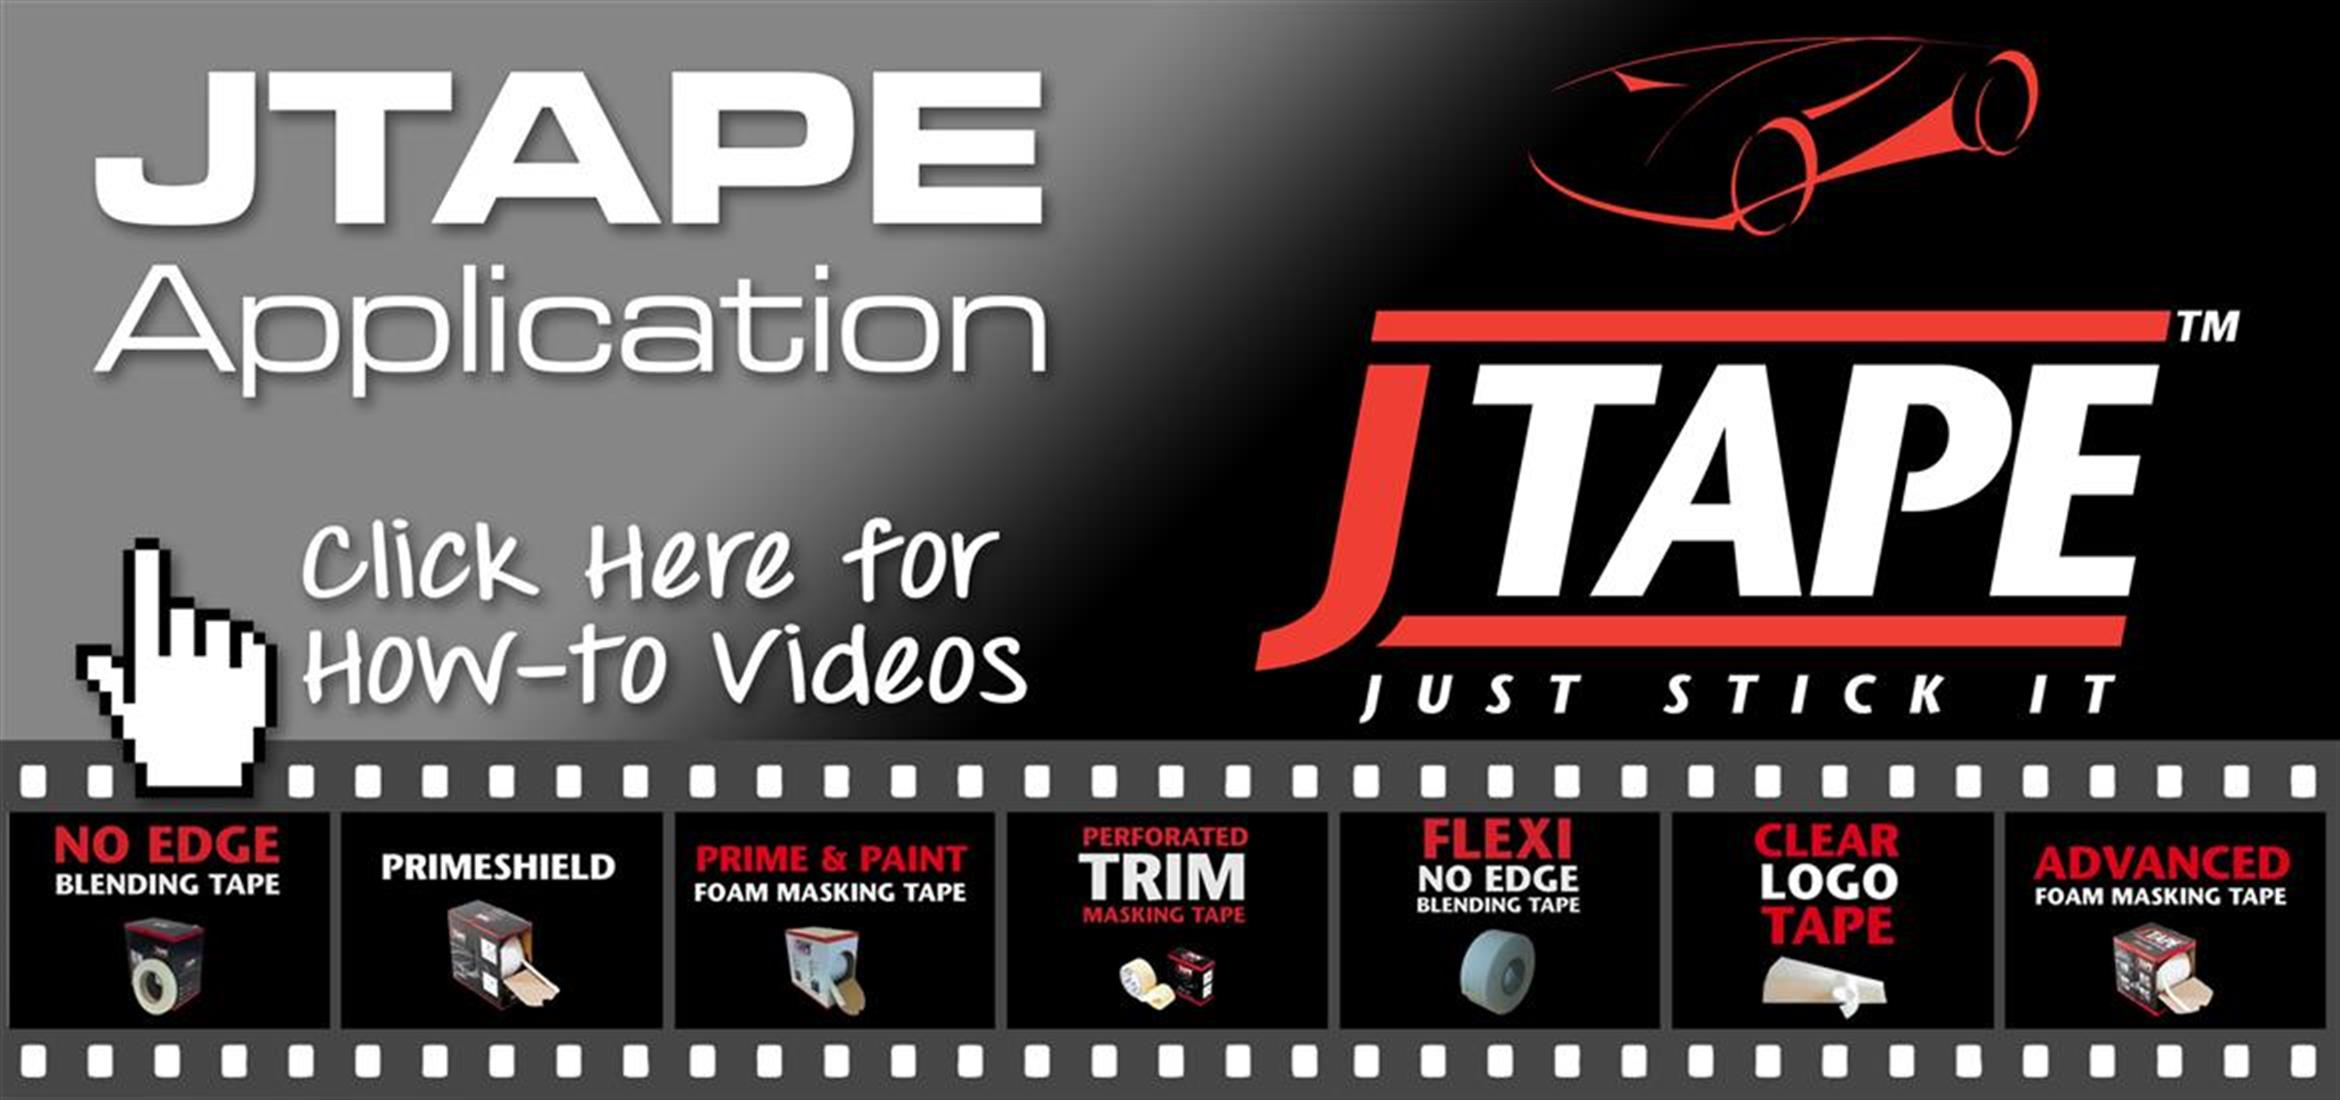 brand_jtape_video_desktop_@2x